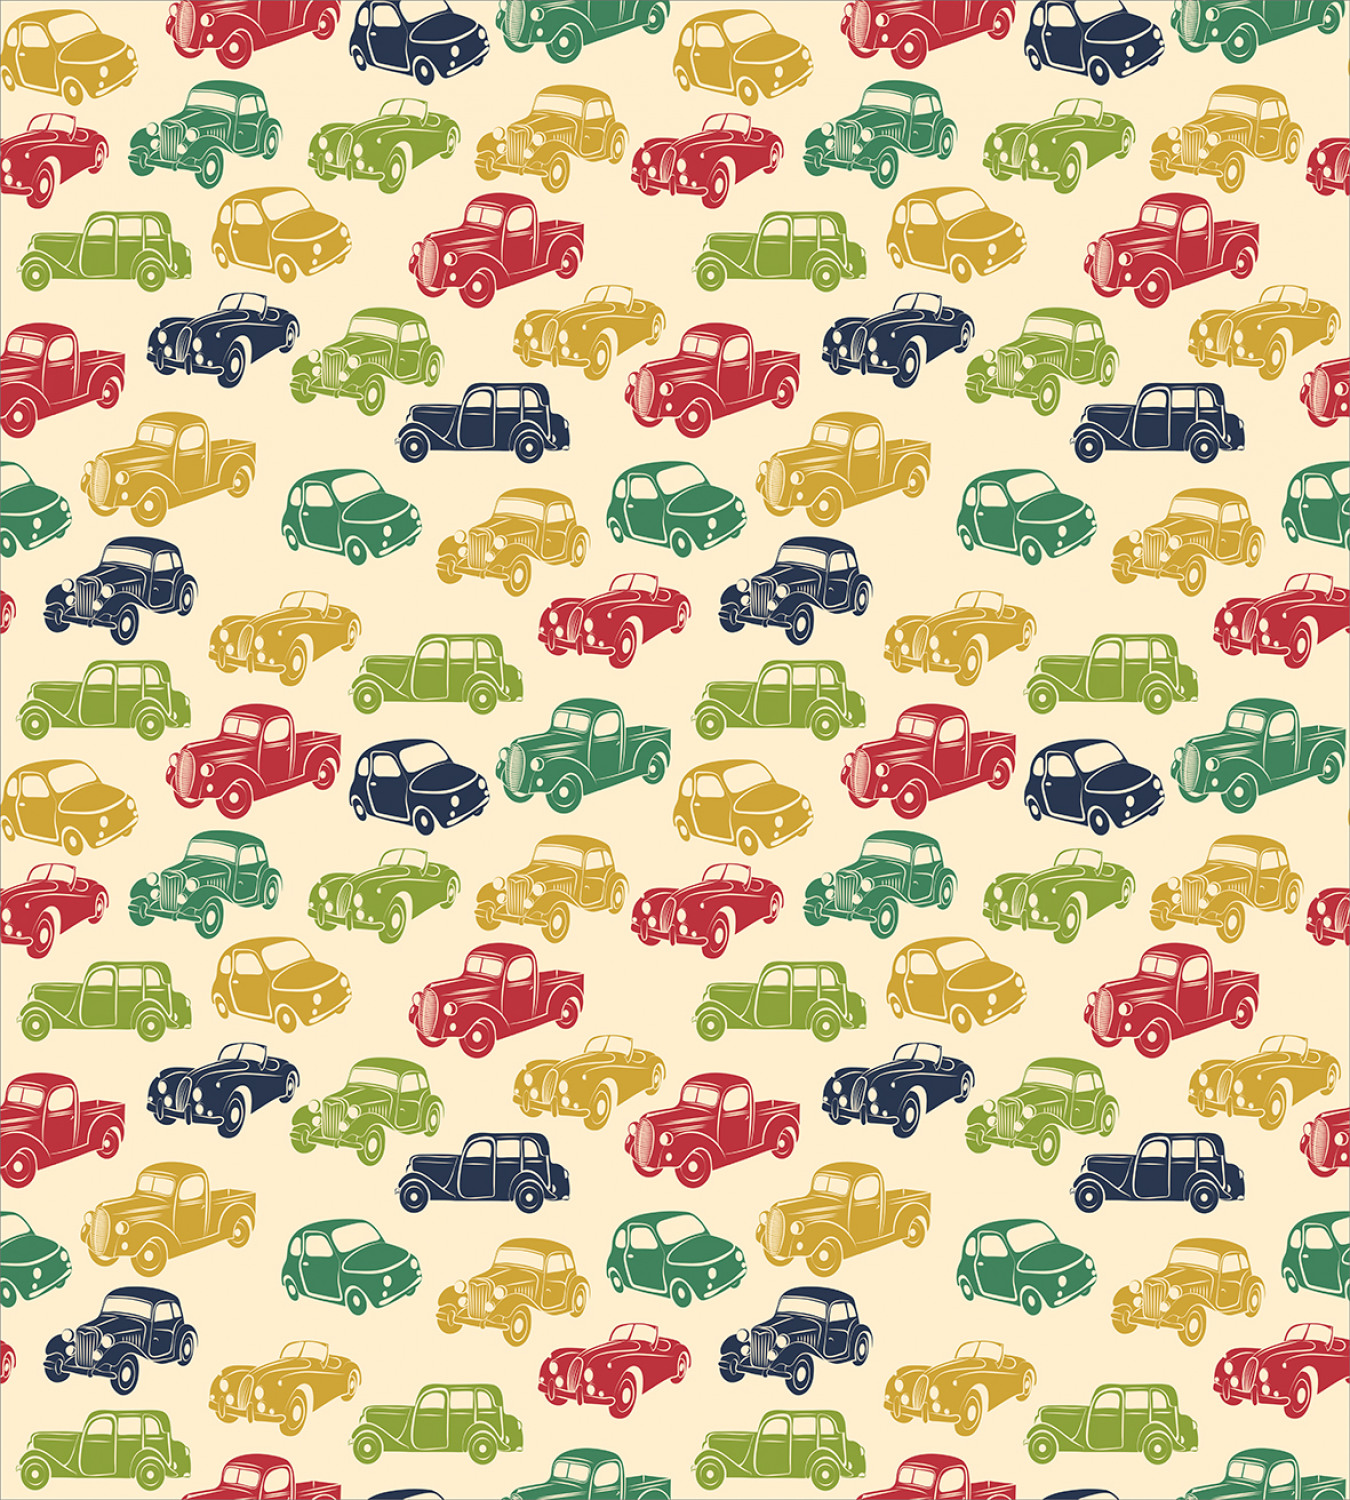 Colorful-Cars-Duvet-Cover-Set-Twin-Queen-King-Sizes-with-Pillow-Shams-Bedding miniature 26